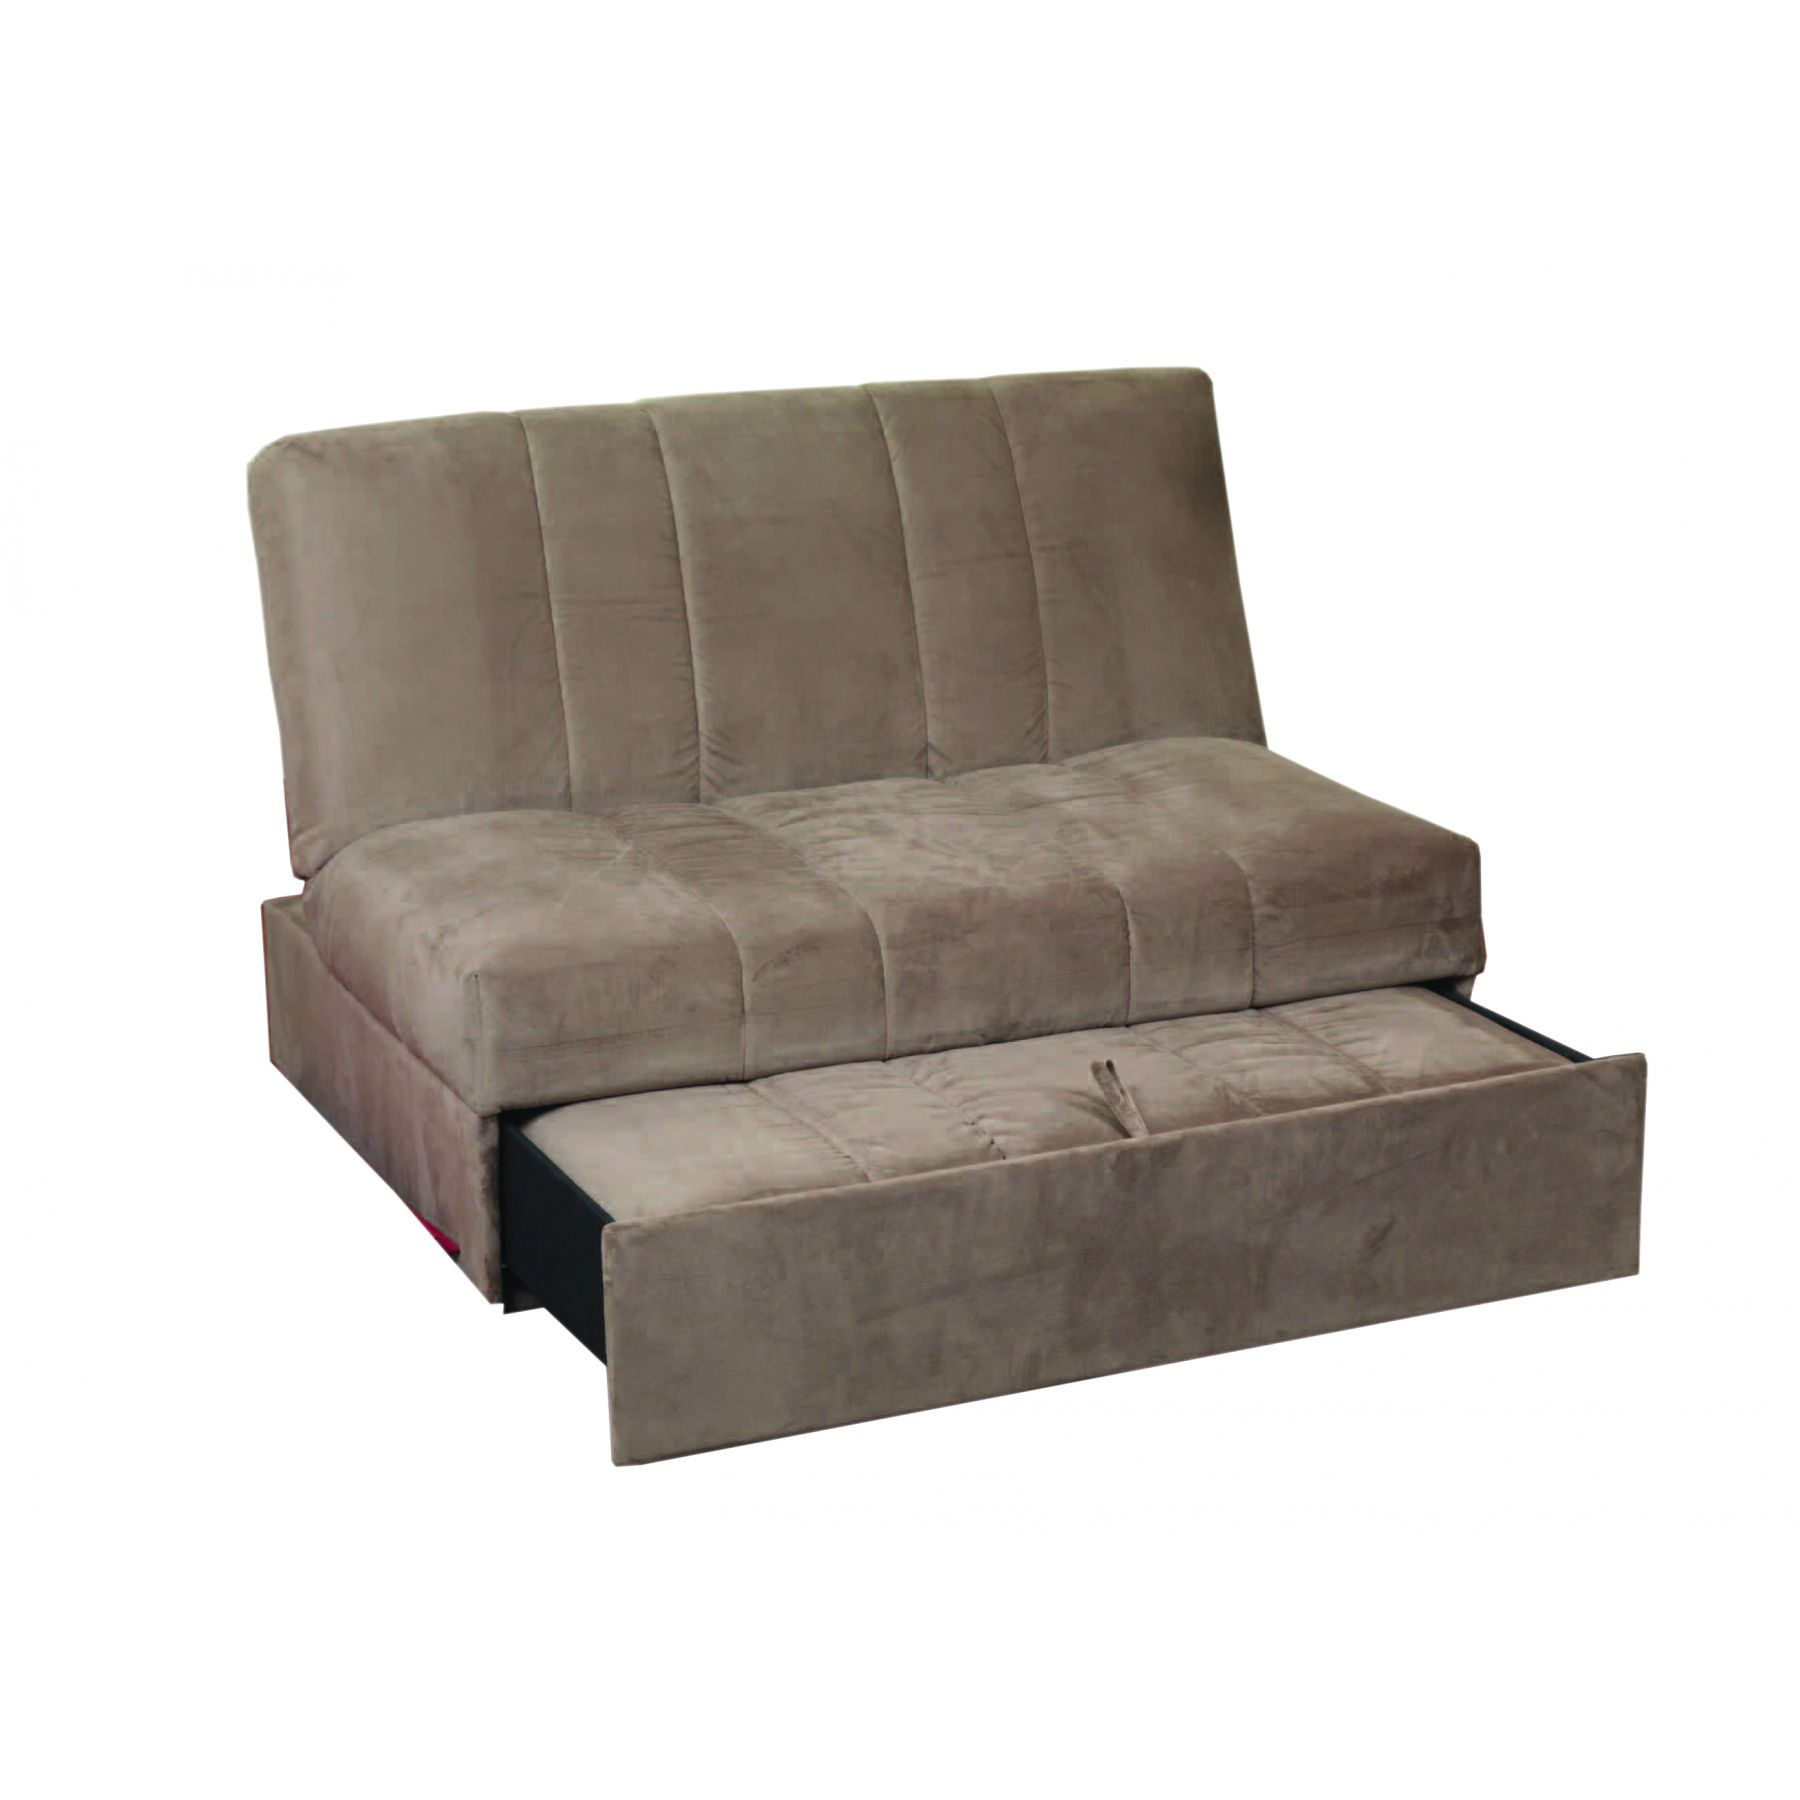 Pictures of gallery of: 2 seater sofa bed mtangyc